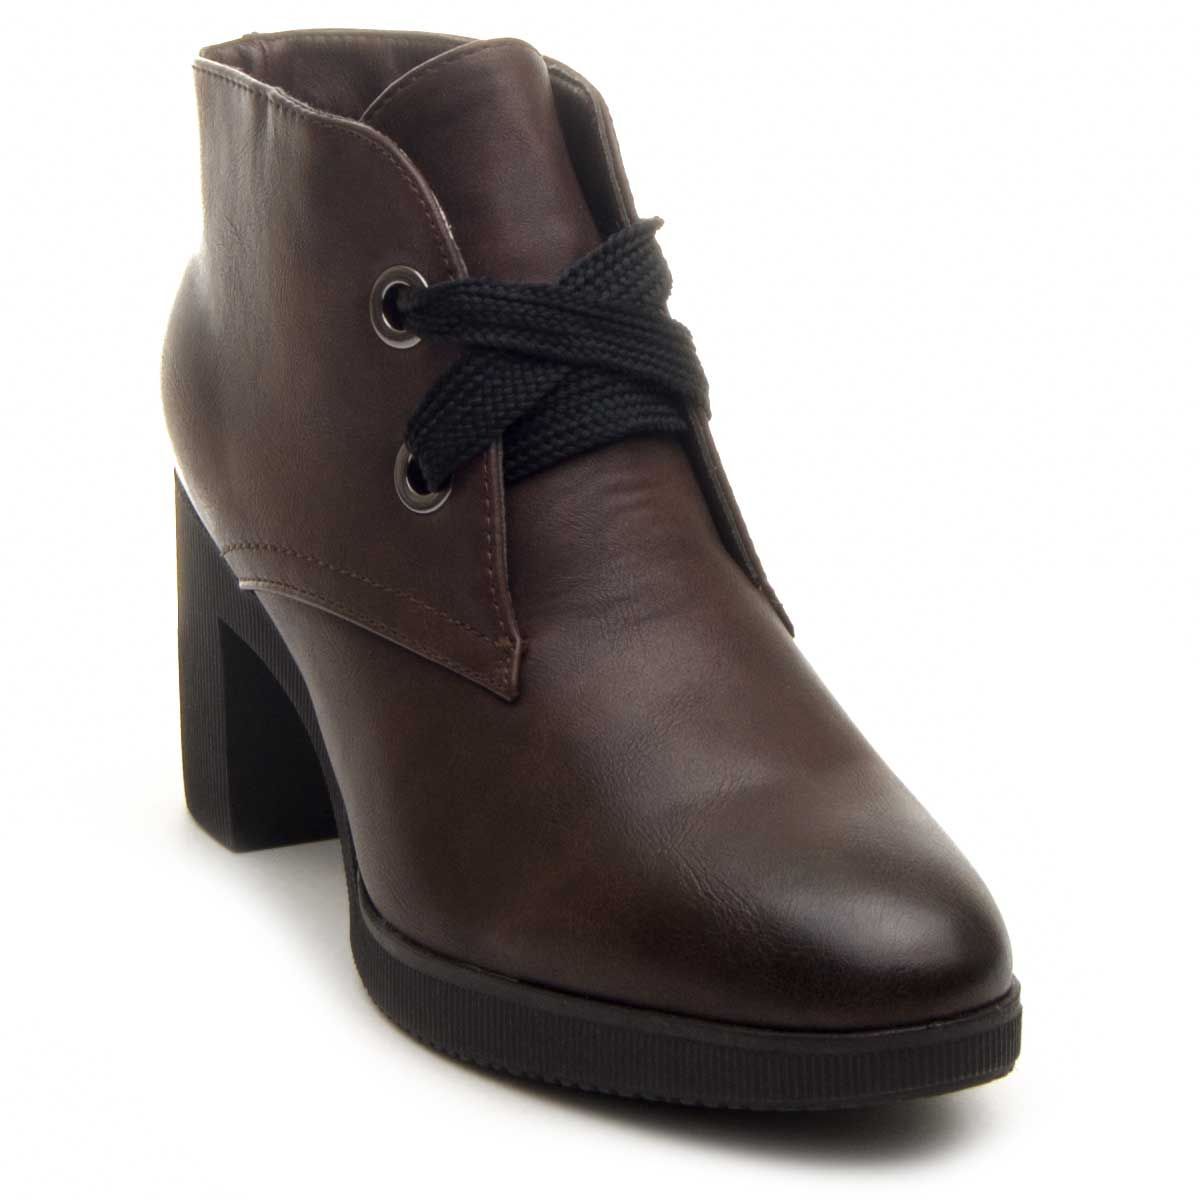 Montevita Heeled Ankle Boot in Brown